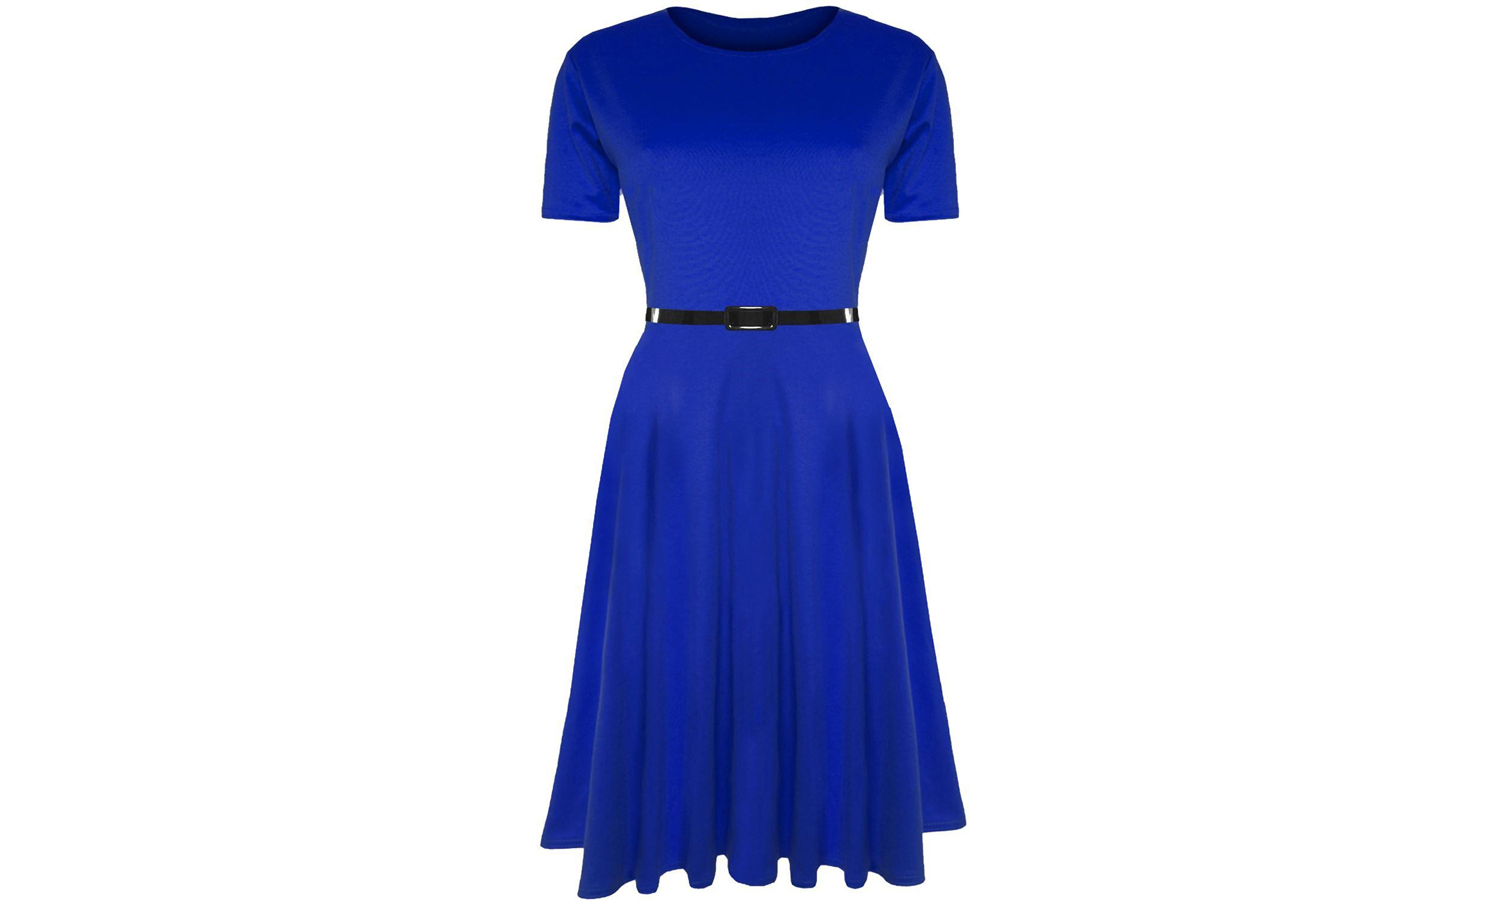 BeJealous Short Sleeve Skater Midi Dress Available Up to Size 26 From £13.99